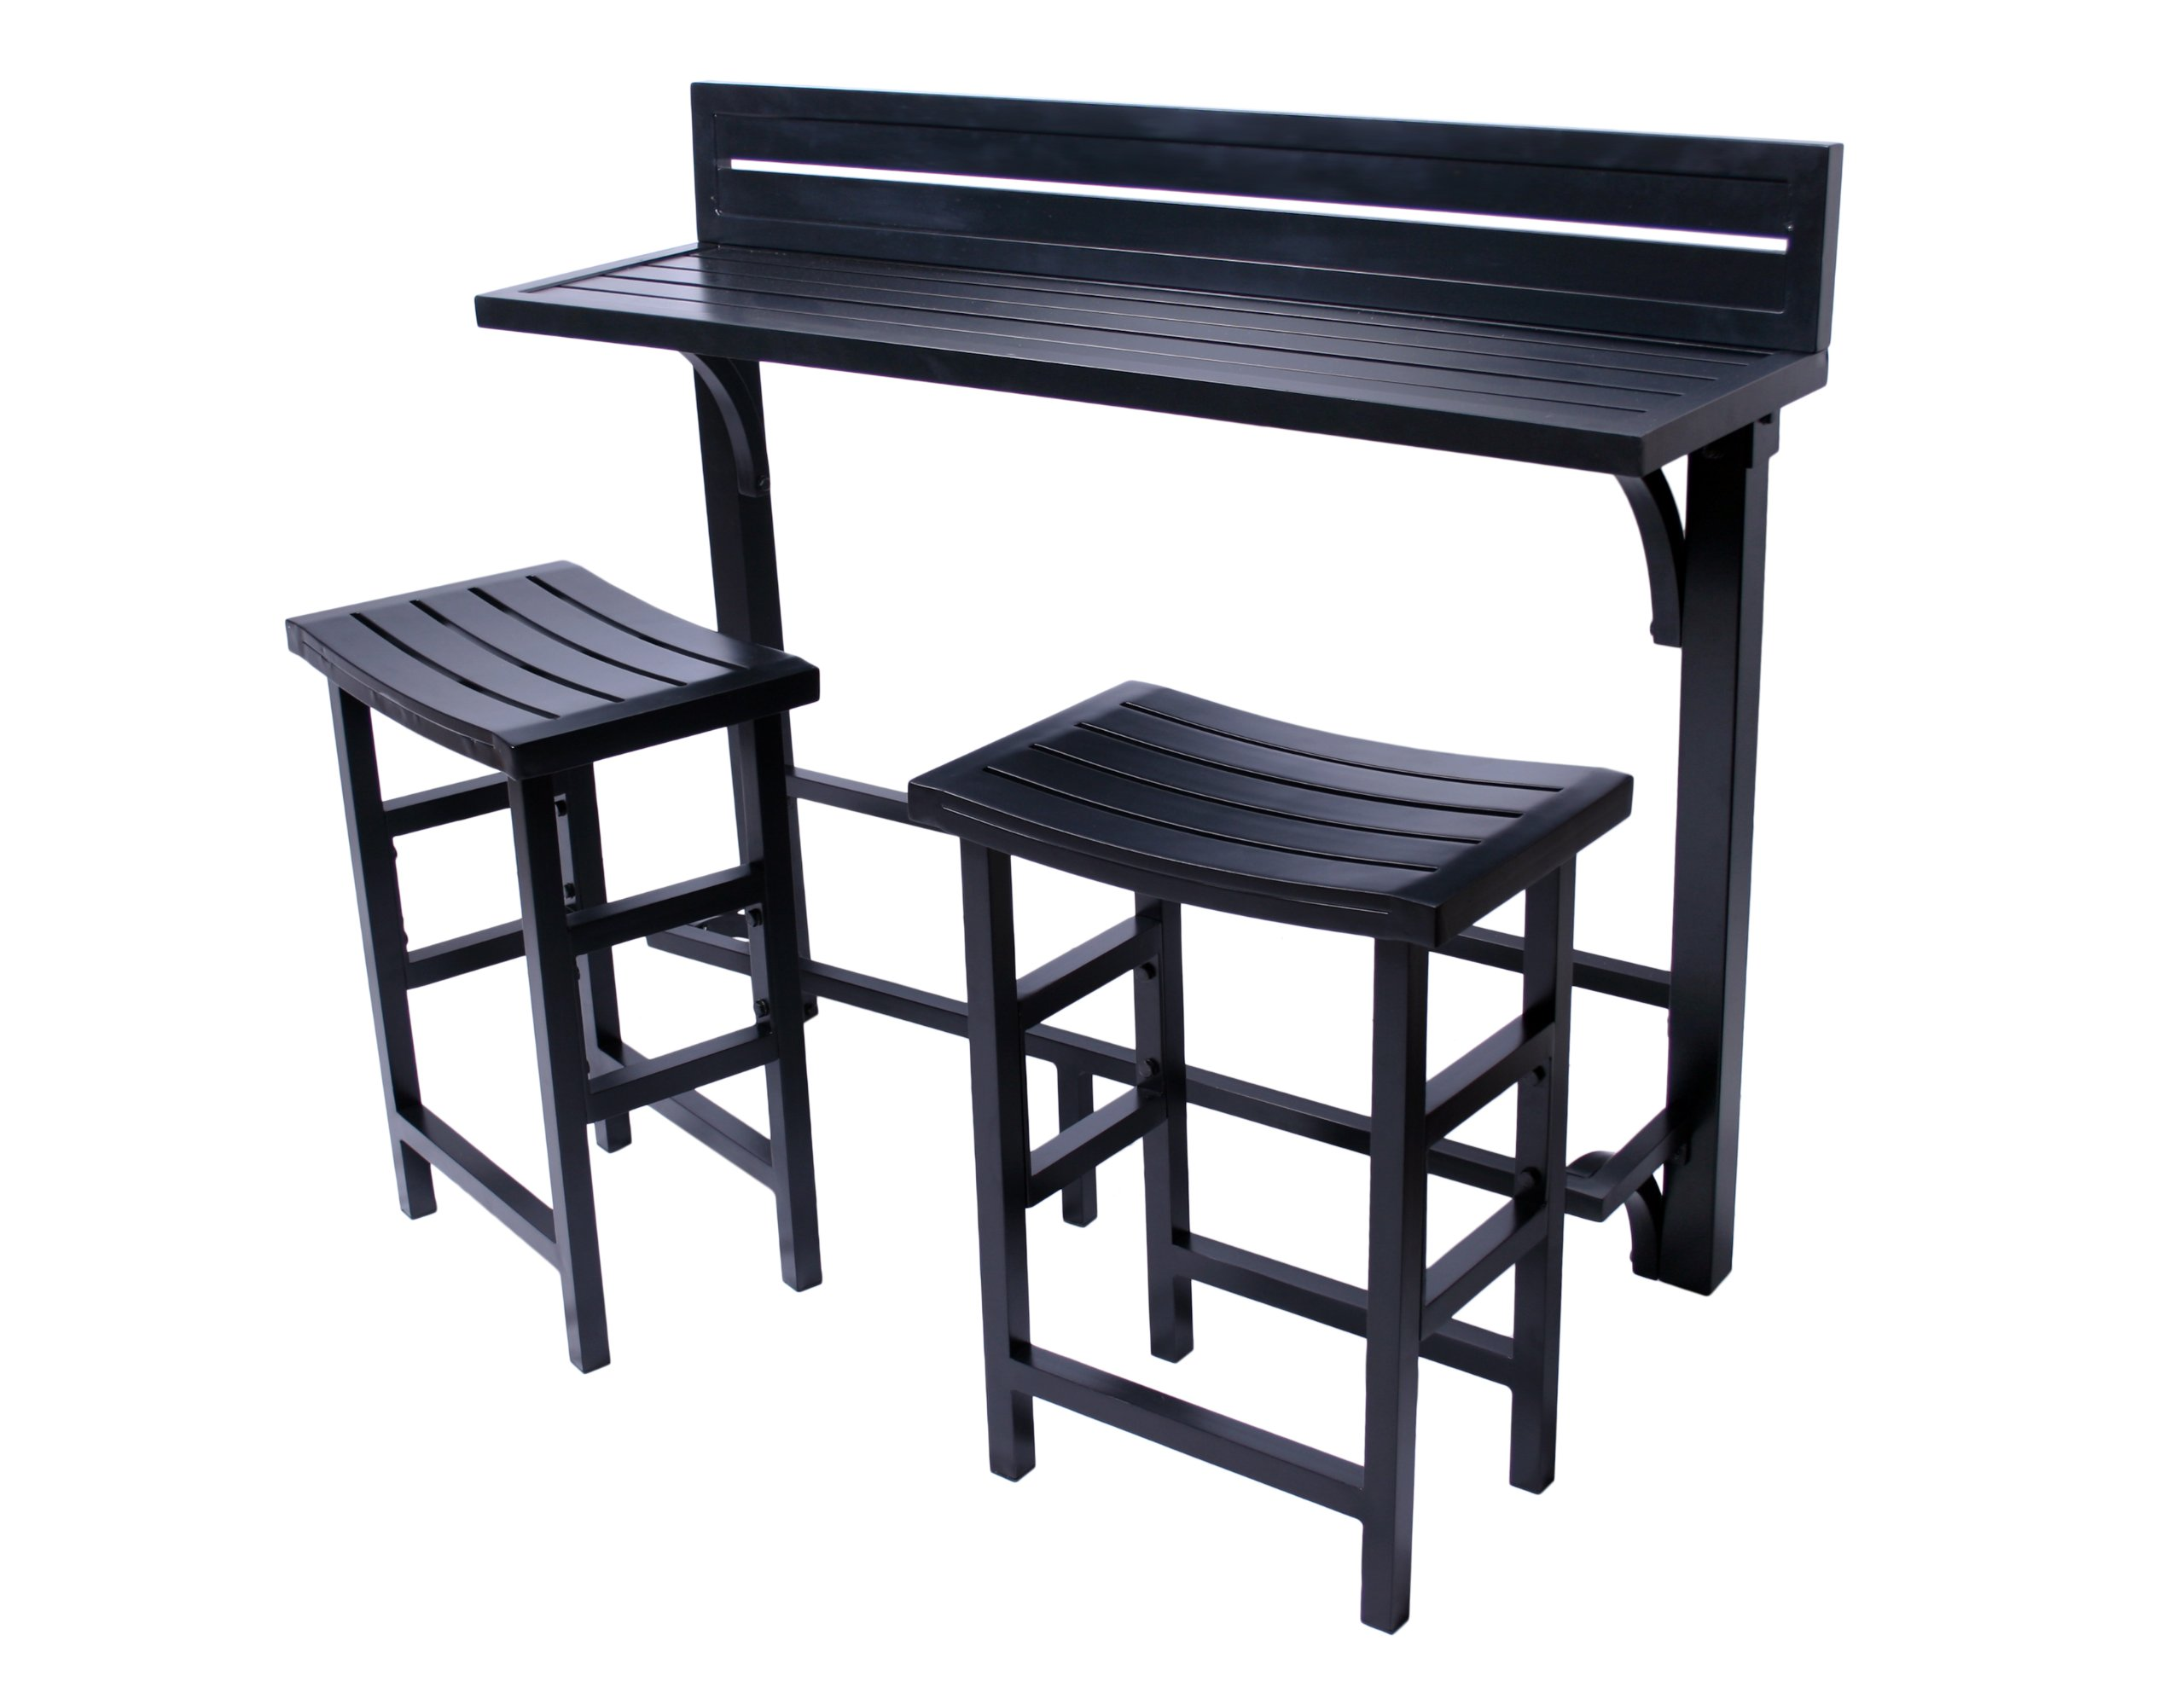 MIYU Furniture 3-piece Balcony Bar – Onyx